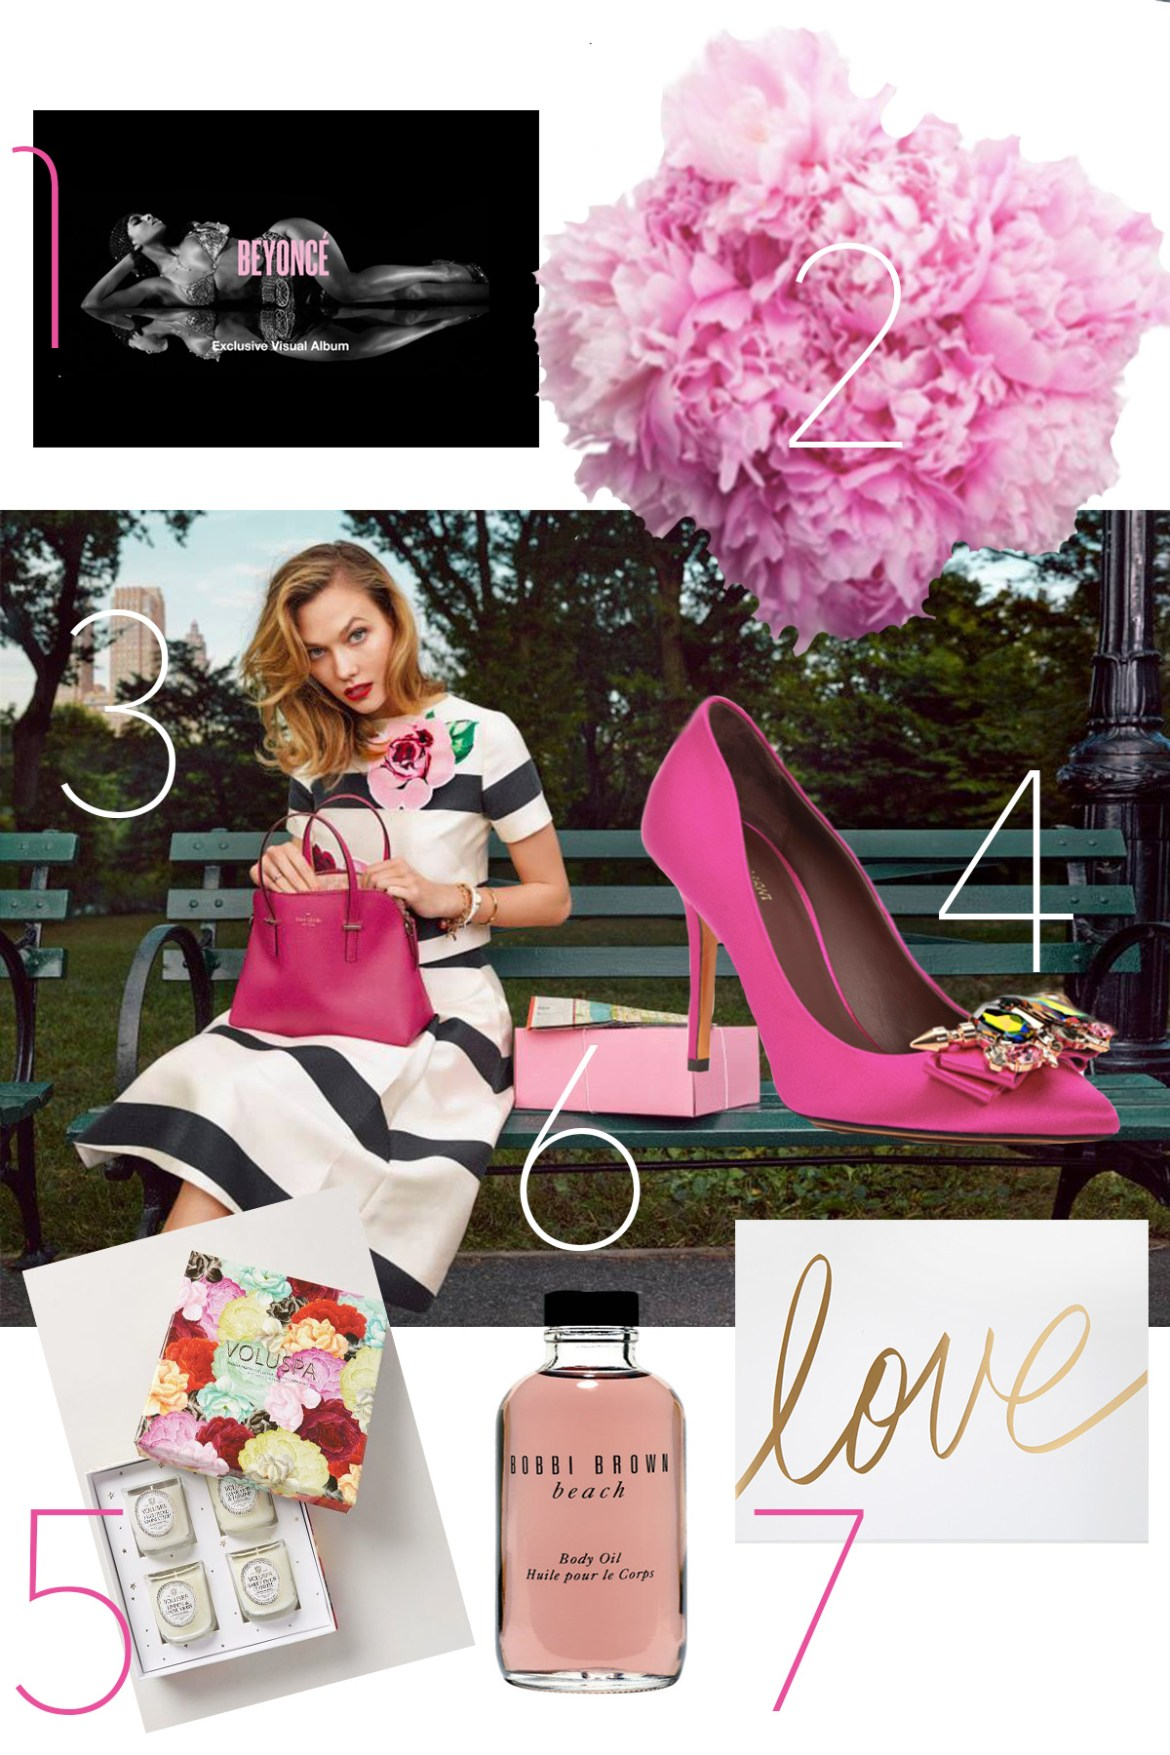 Valentine's Day gift guide and inspiration